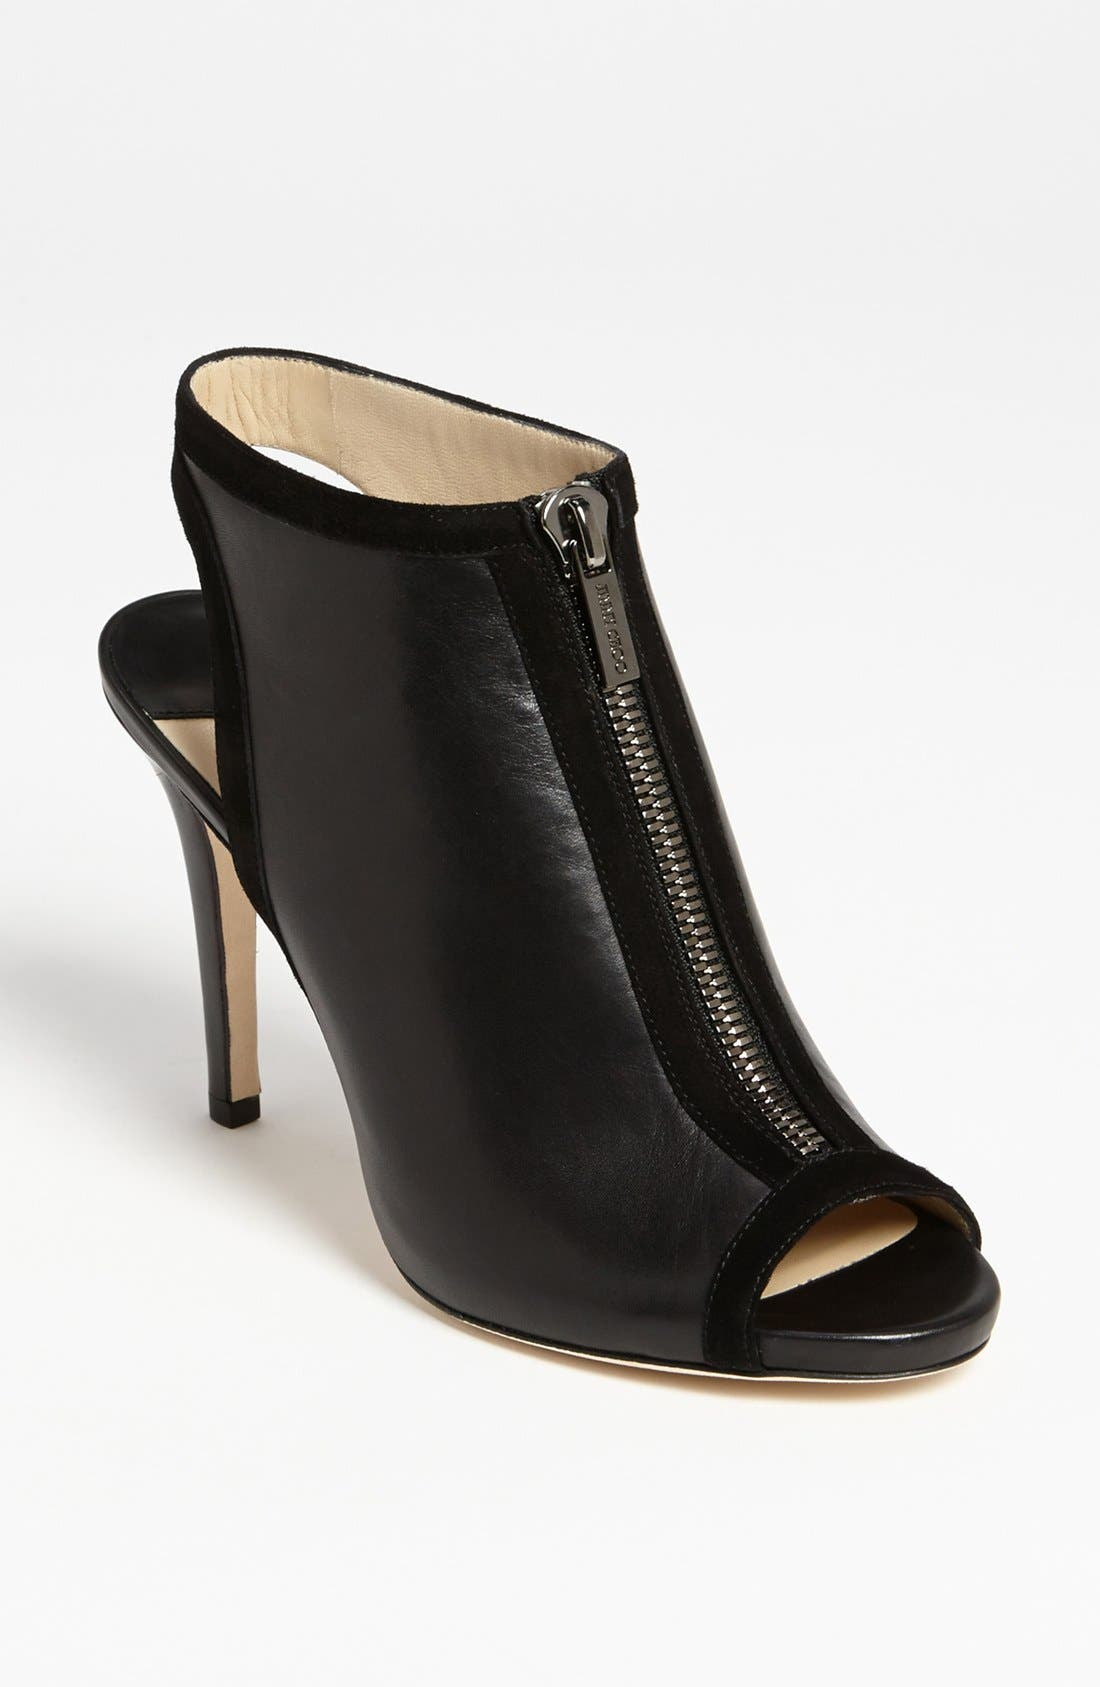 Alternate Image 1 Selected - Jimmy Choo 'Mayva' Bootie